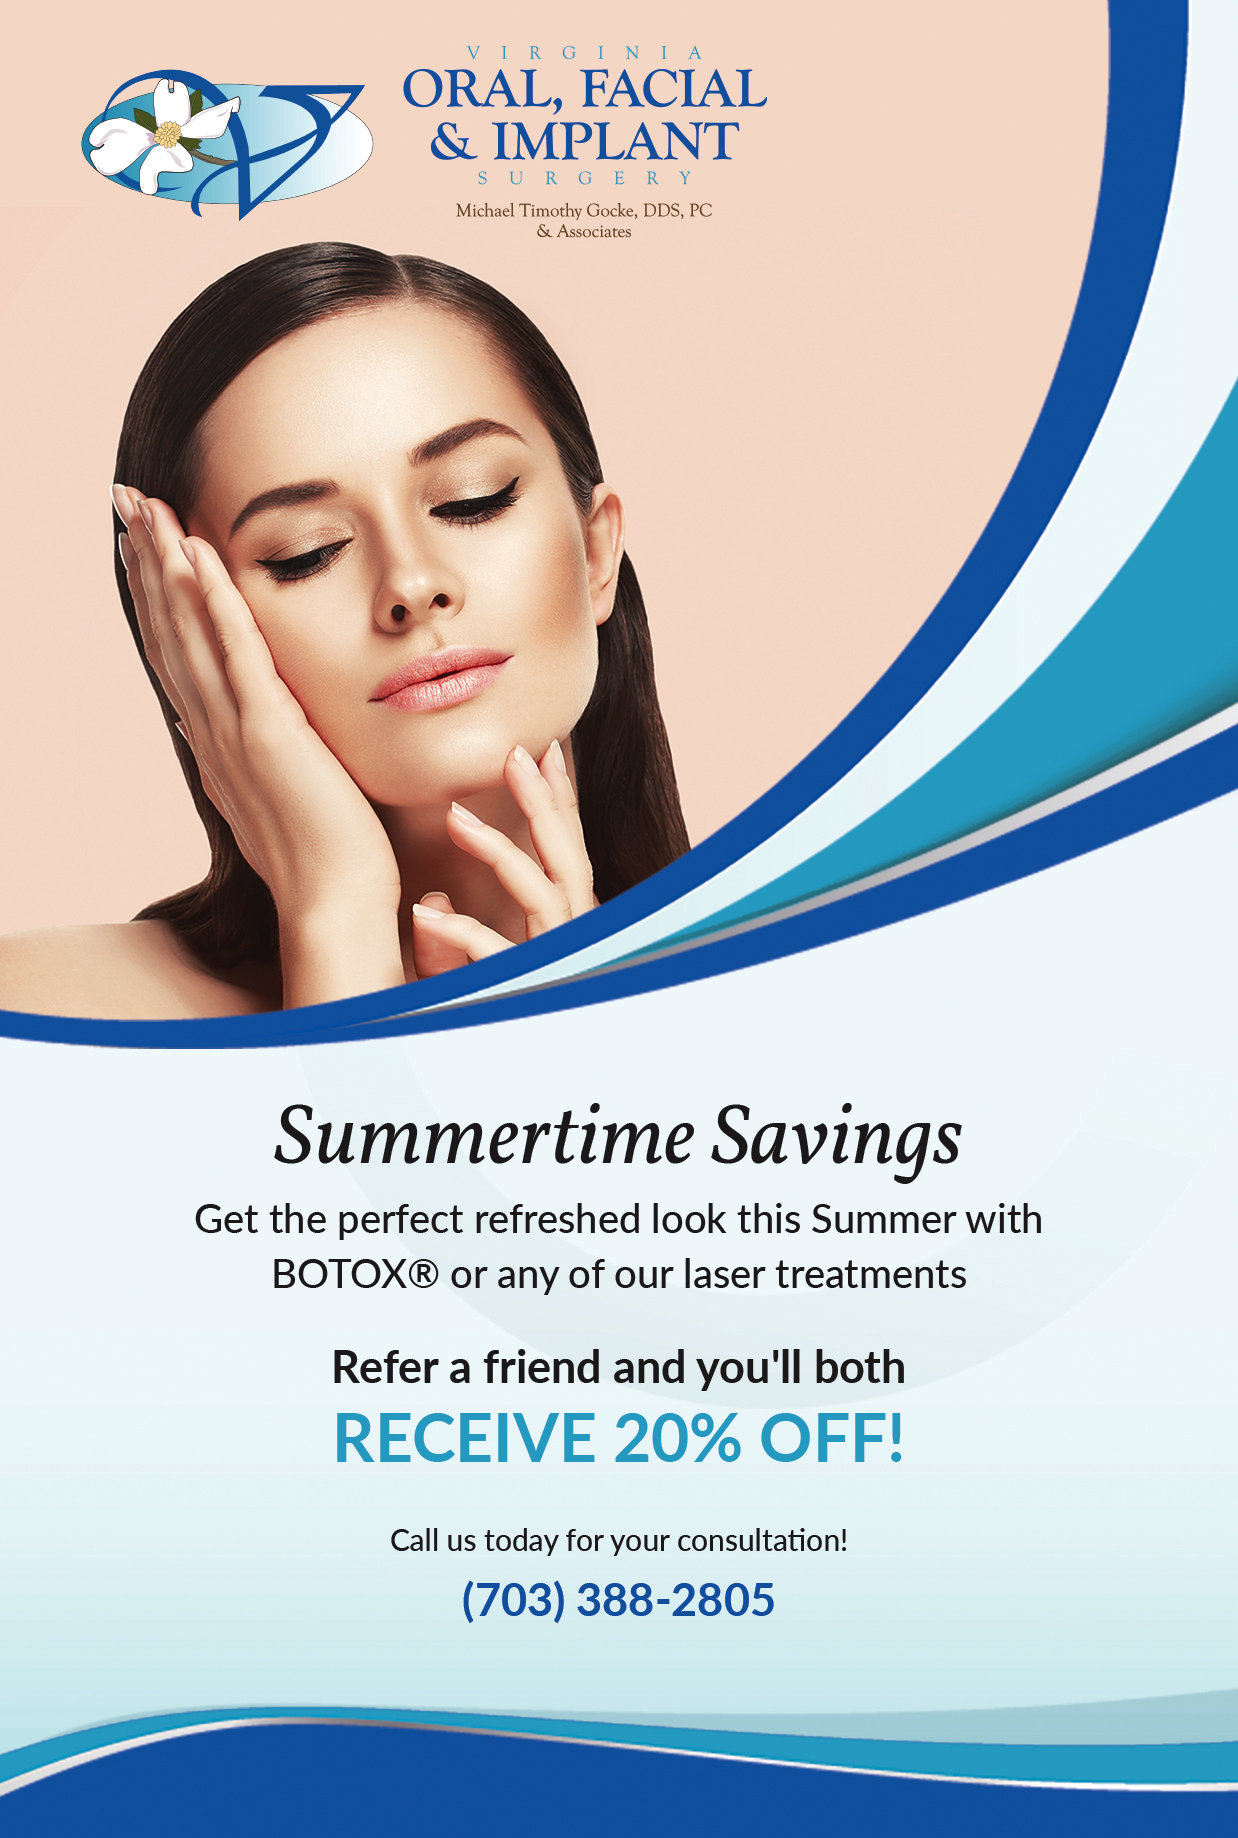 Summertime Savings 2019 Flyer